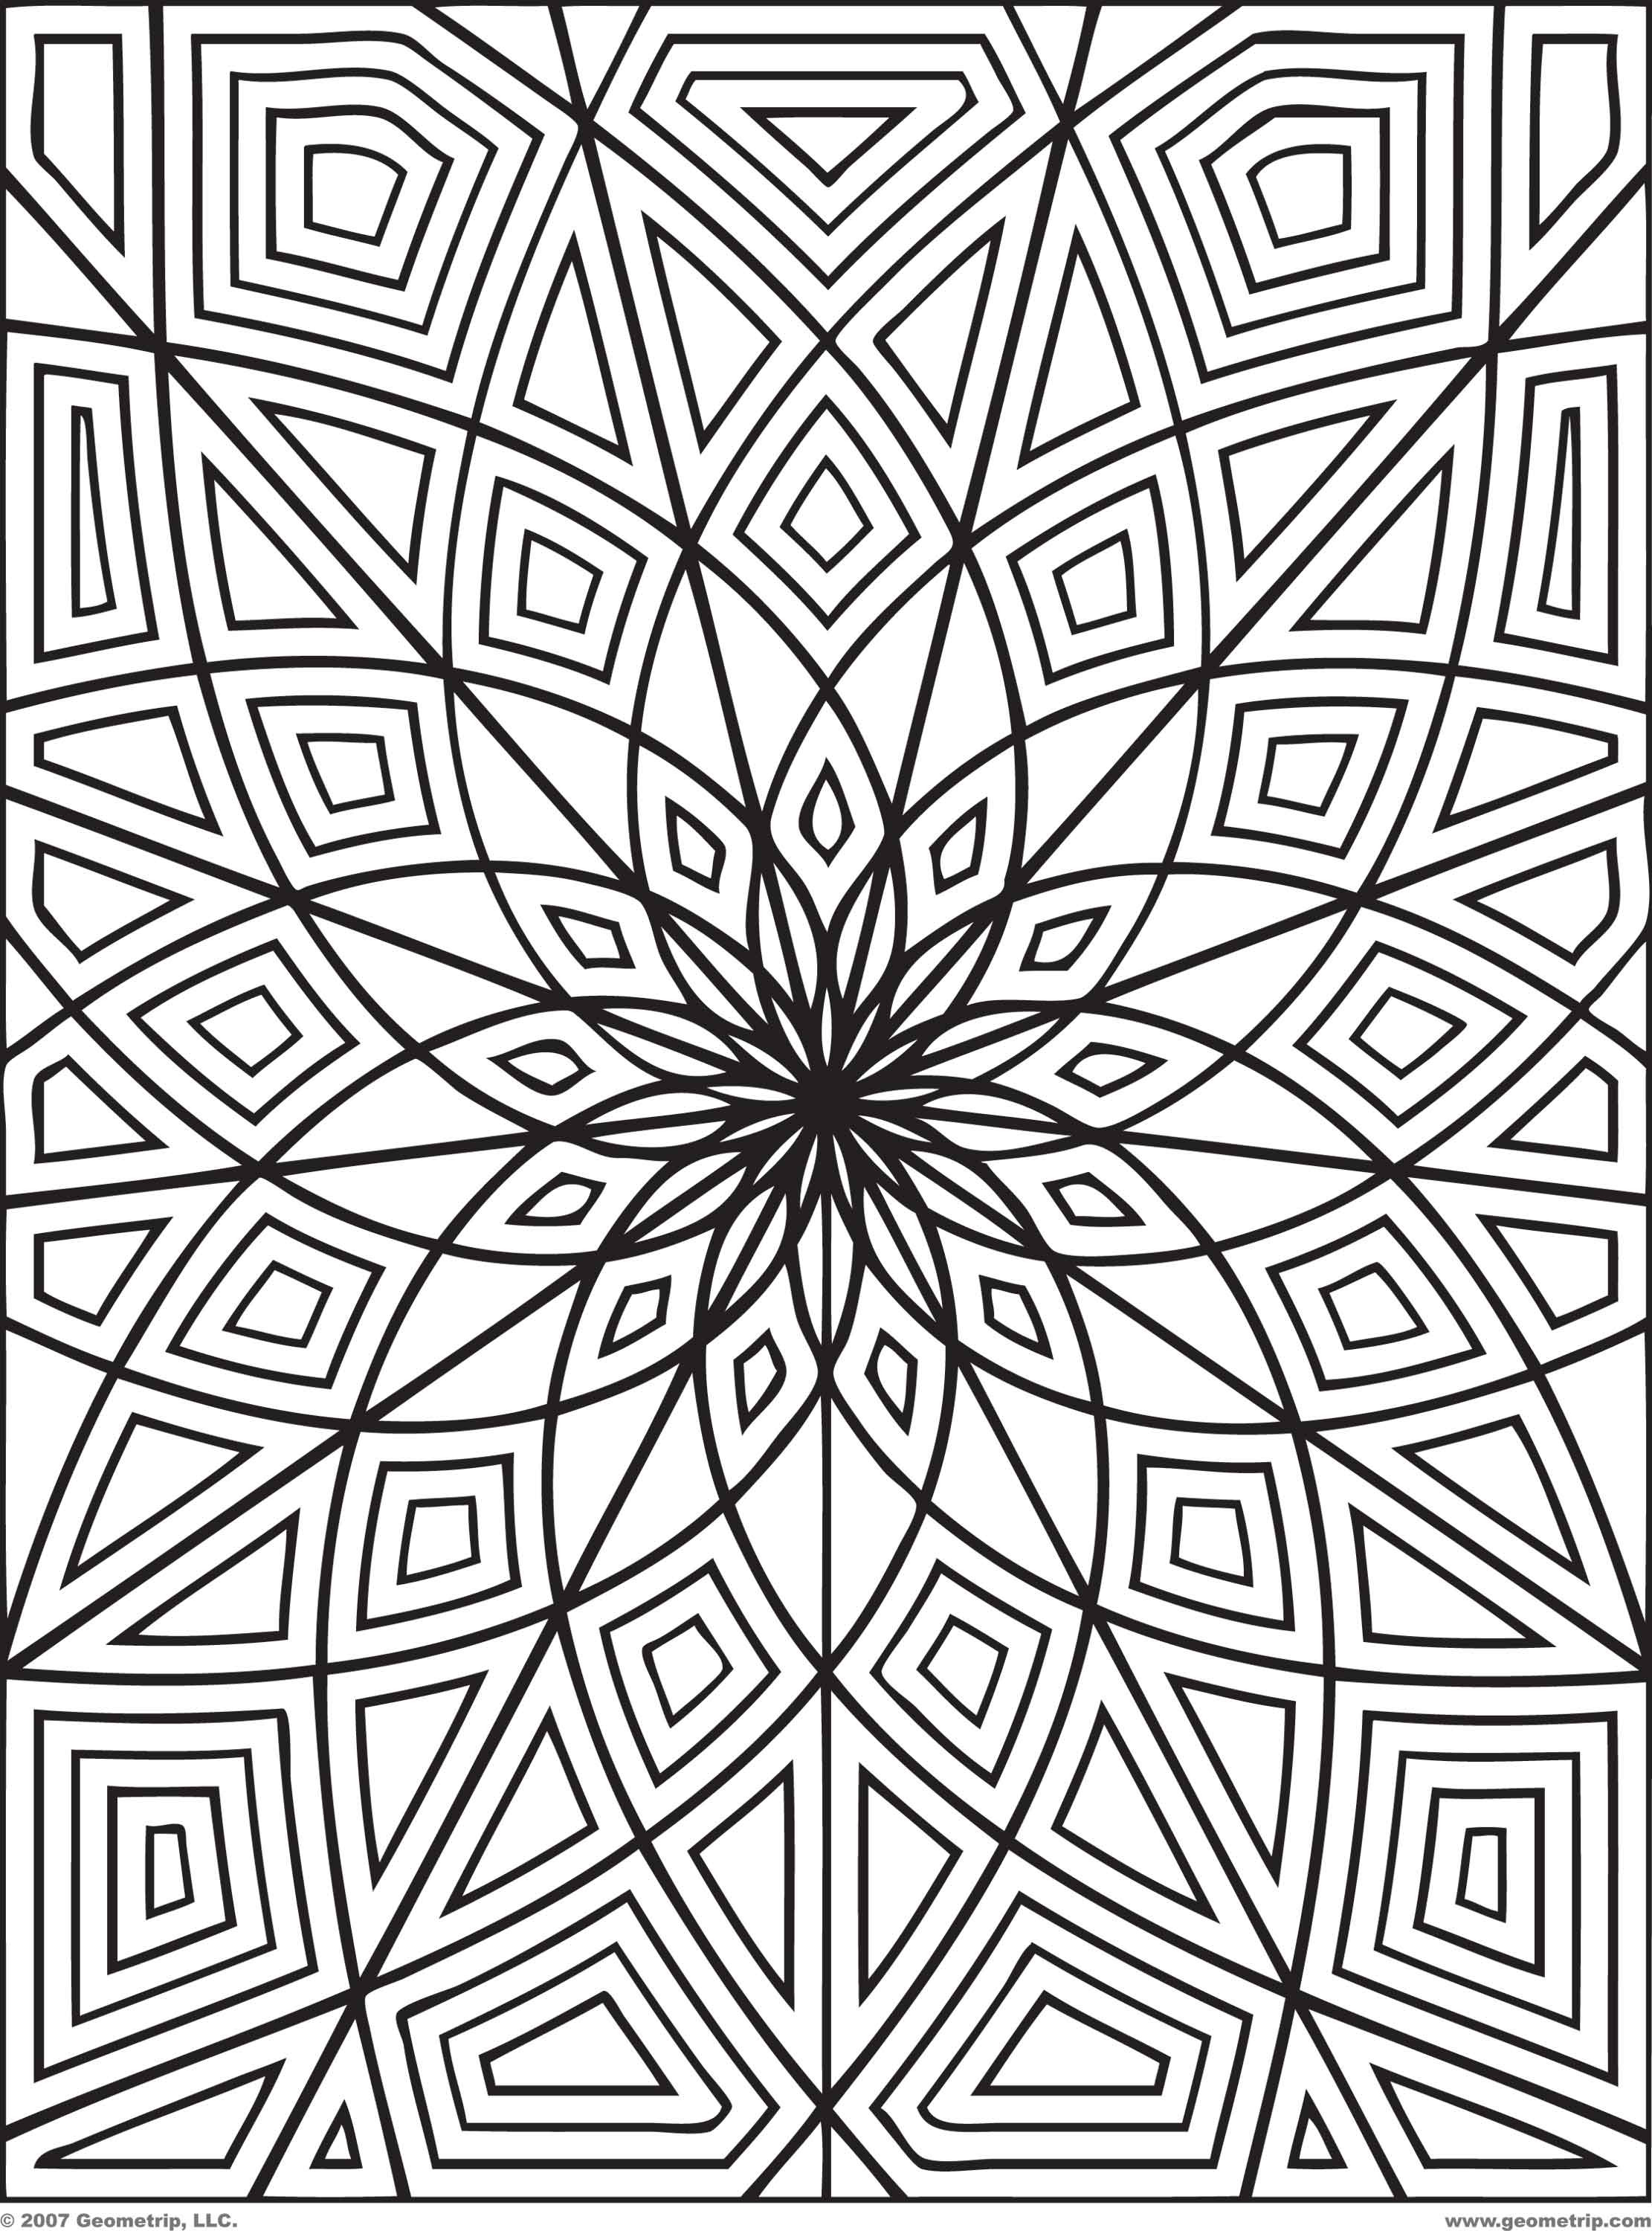 Printable Free Coloring Pages For Adults  Free Printable Adult Coloring Pages Awesome Image 14